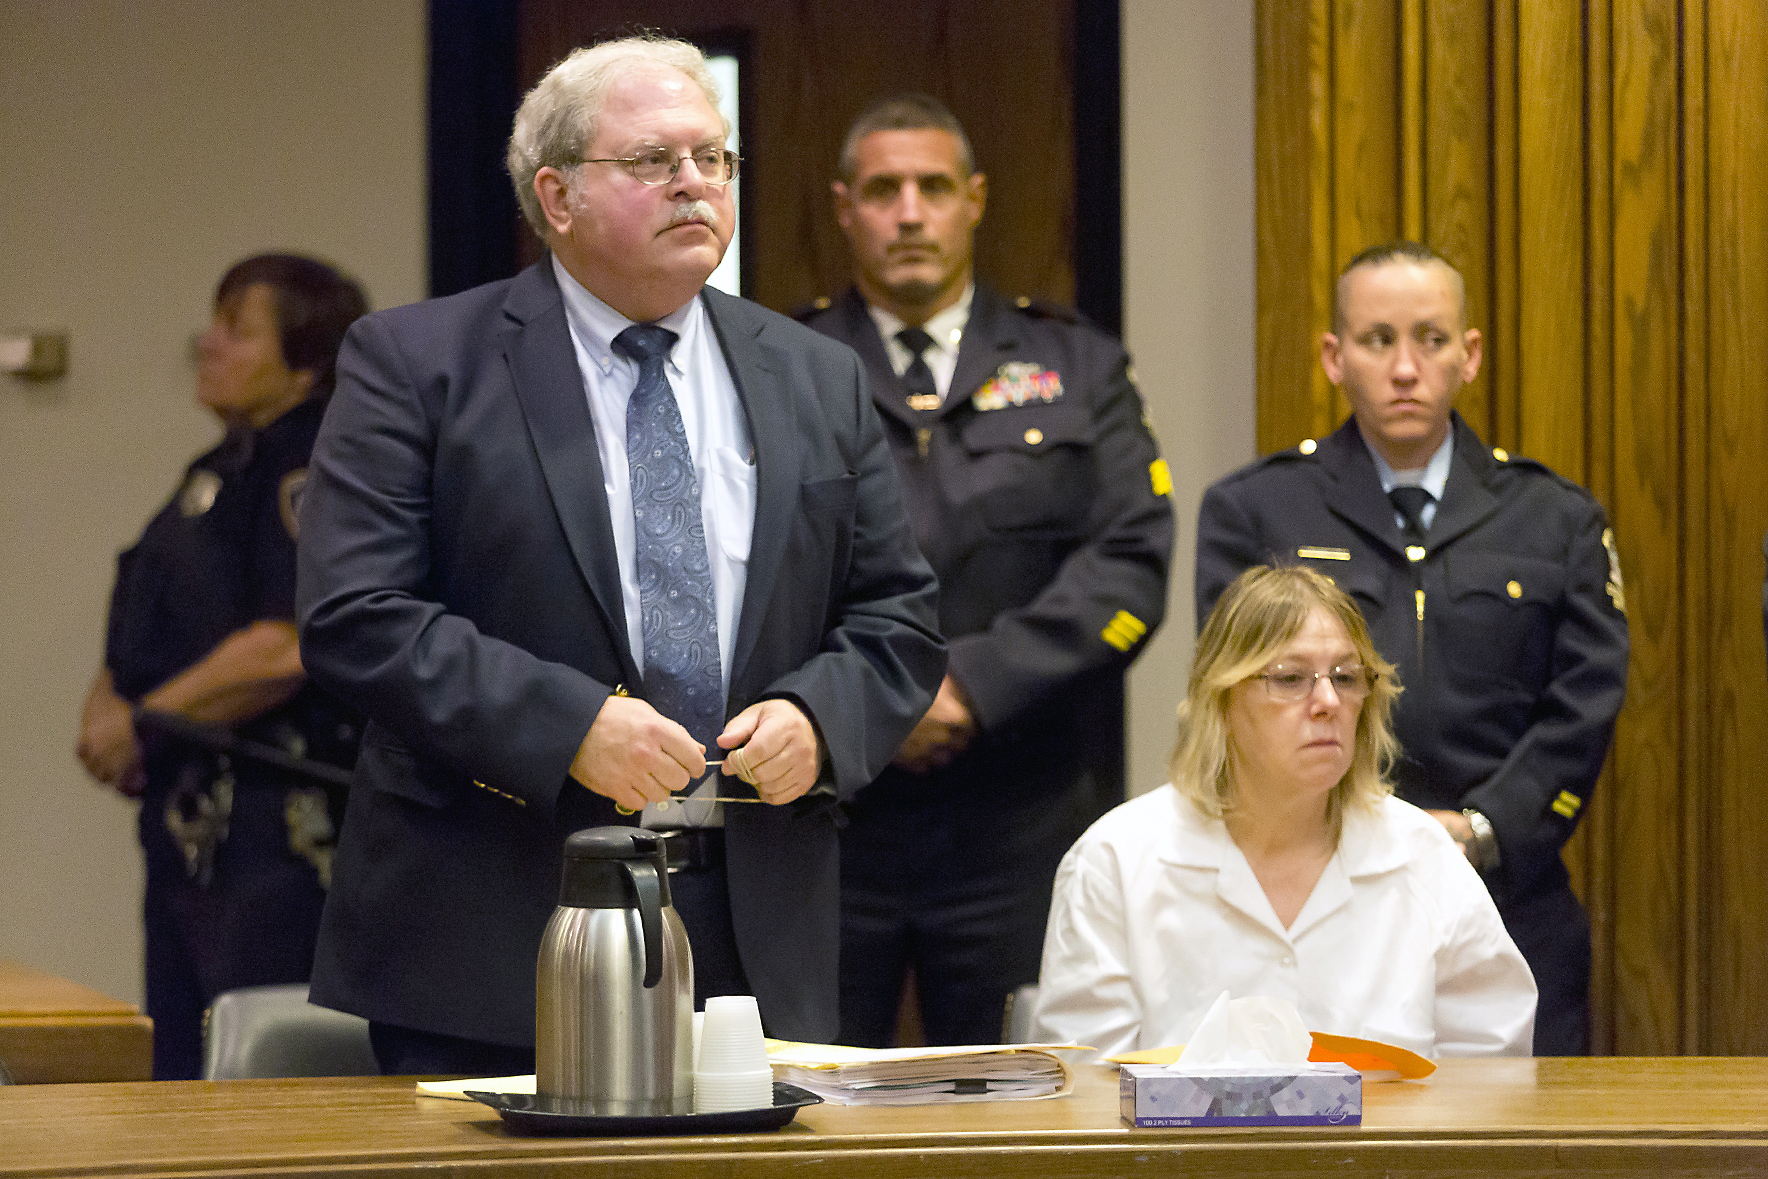 Joyce Mitchell ordered to pay $88,000 in restitution to New York